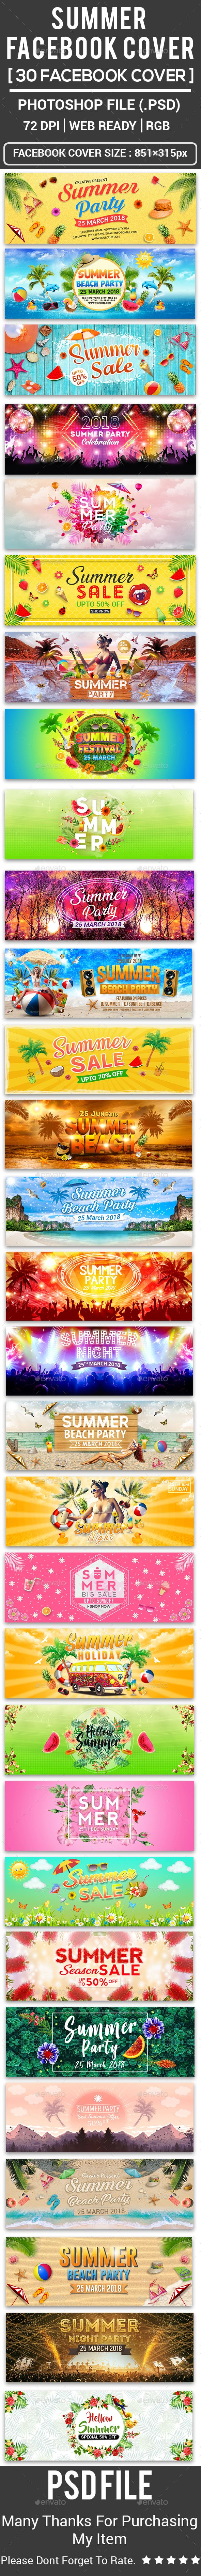 Summer Facebook Cover